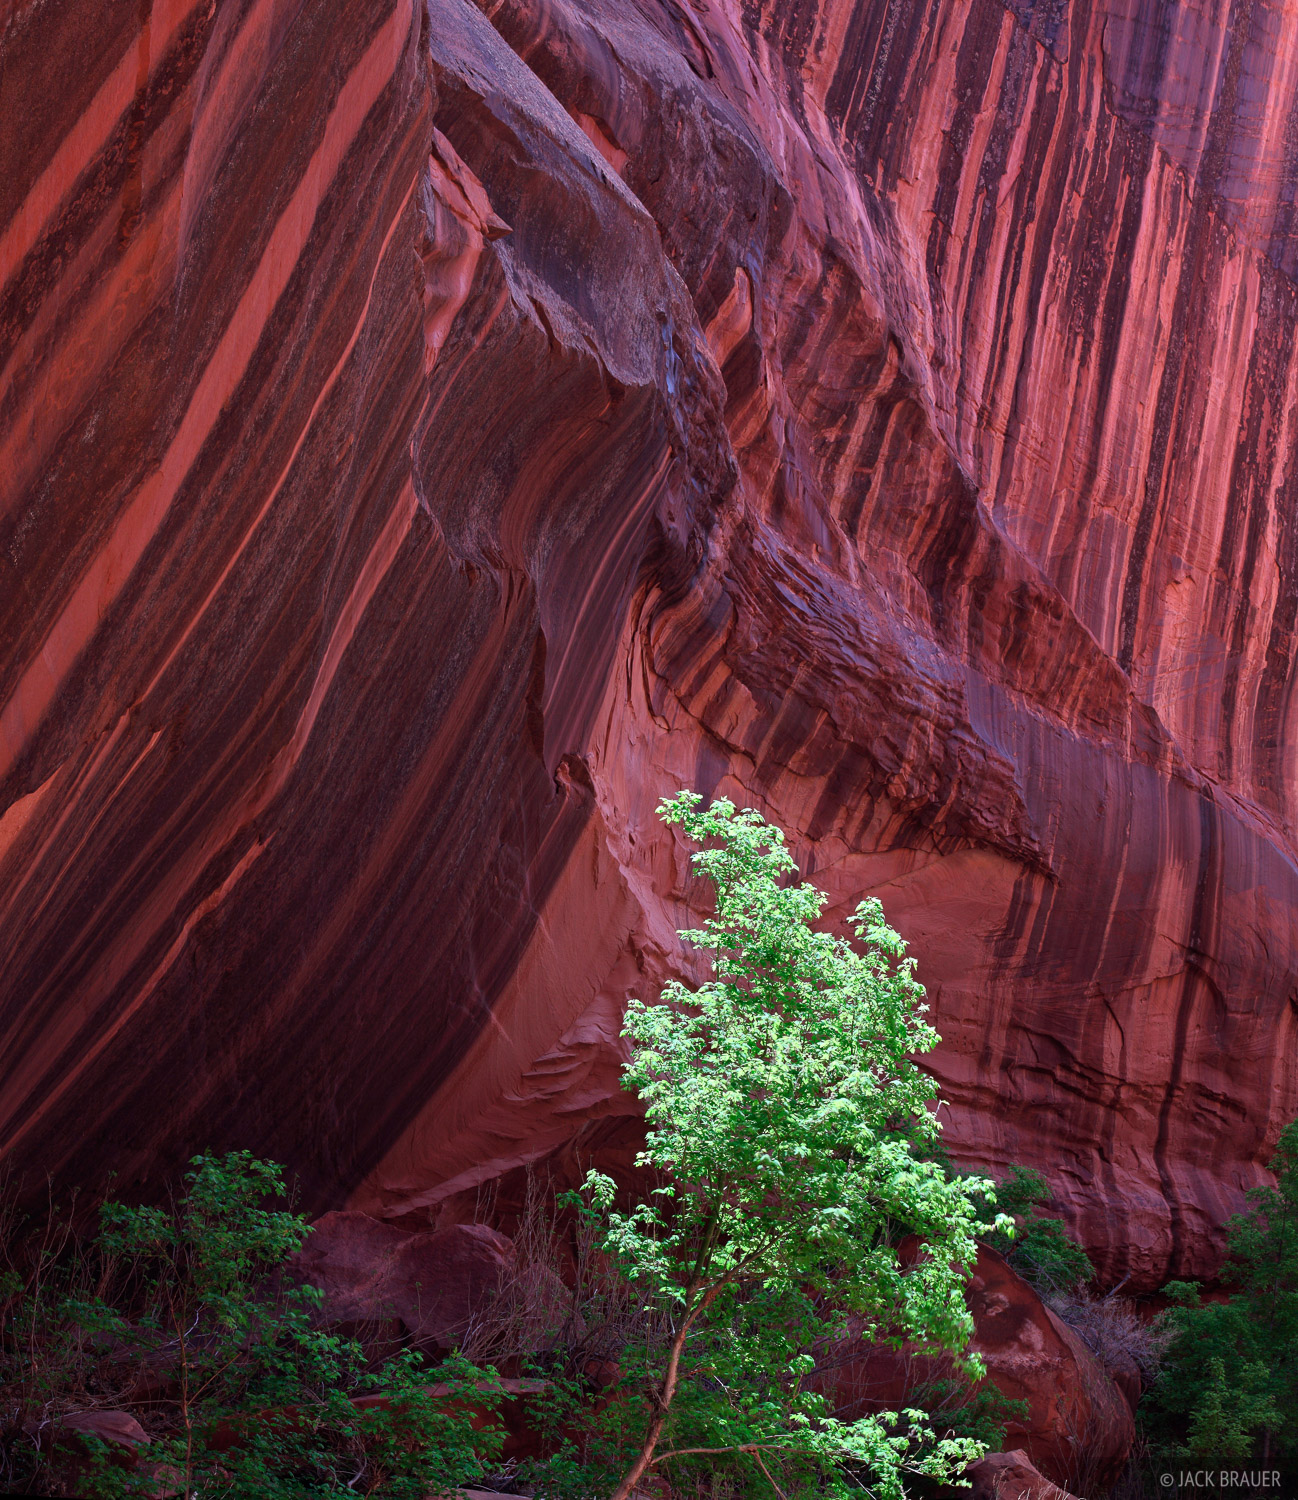 Escalante, Utah, desert varnish, canyon, Grand Staircase-Escalante National Monument, photo